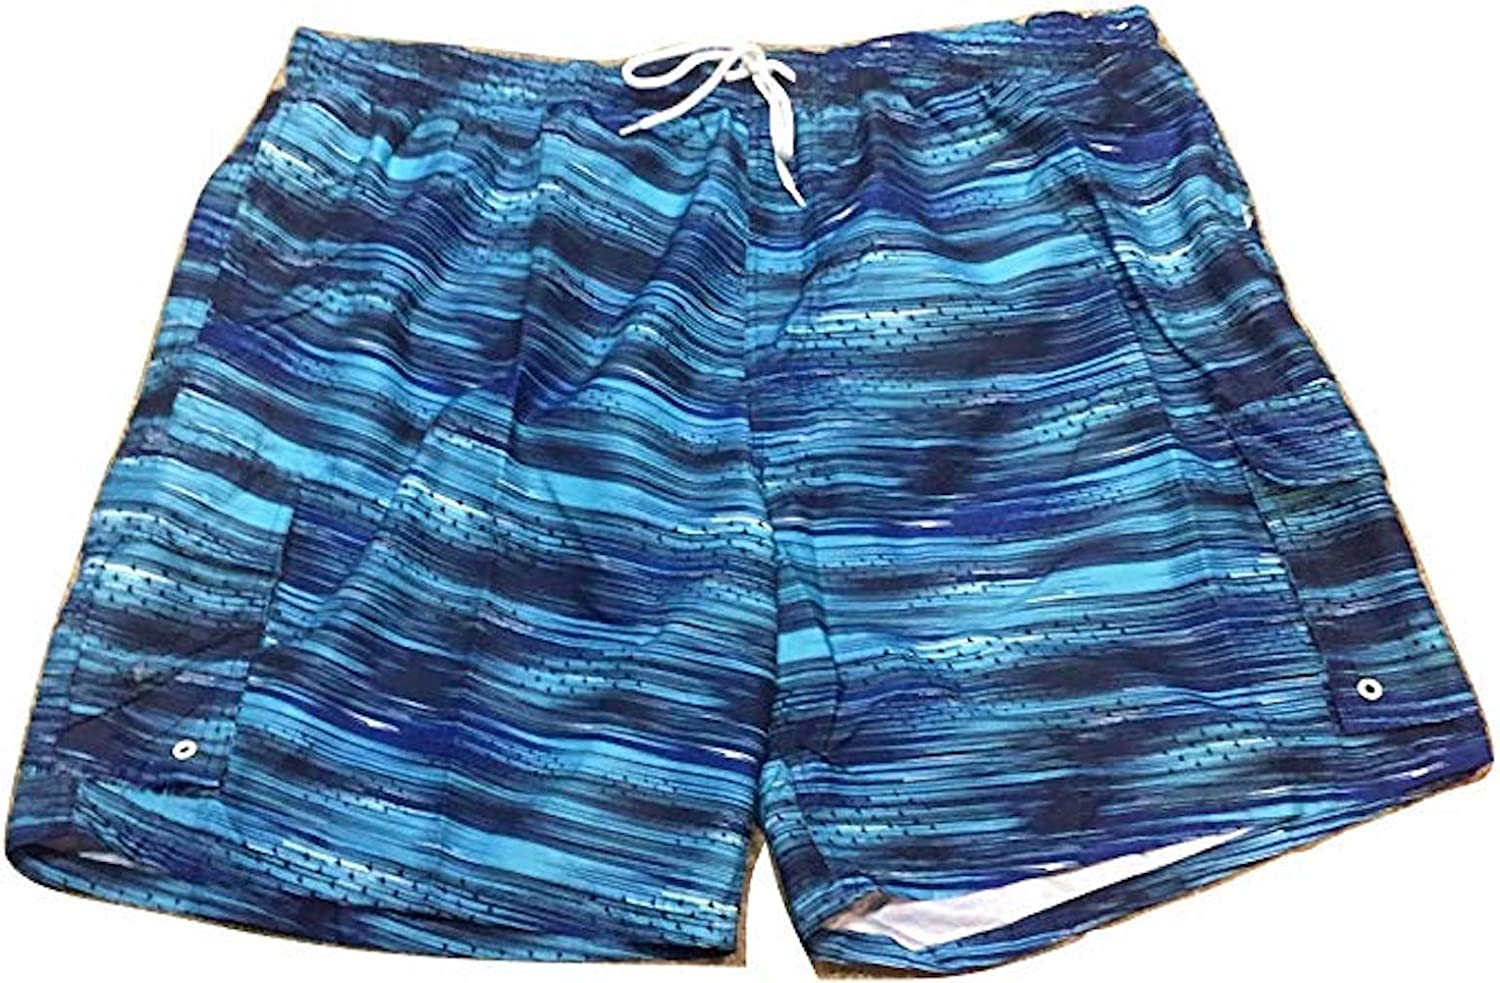 Big and Tall Board Short Cargo Swim Trunks to 8X